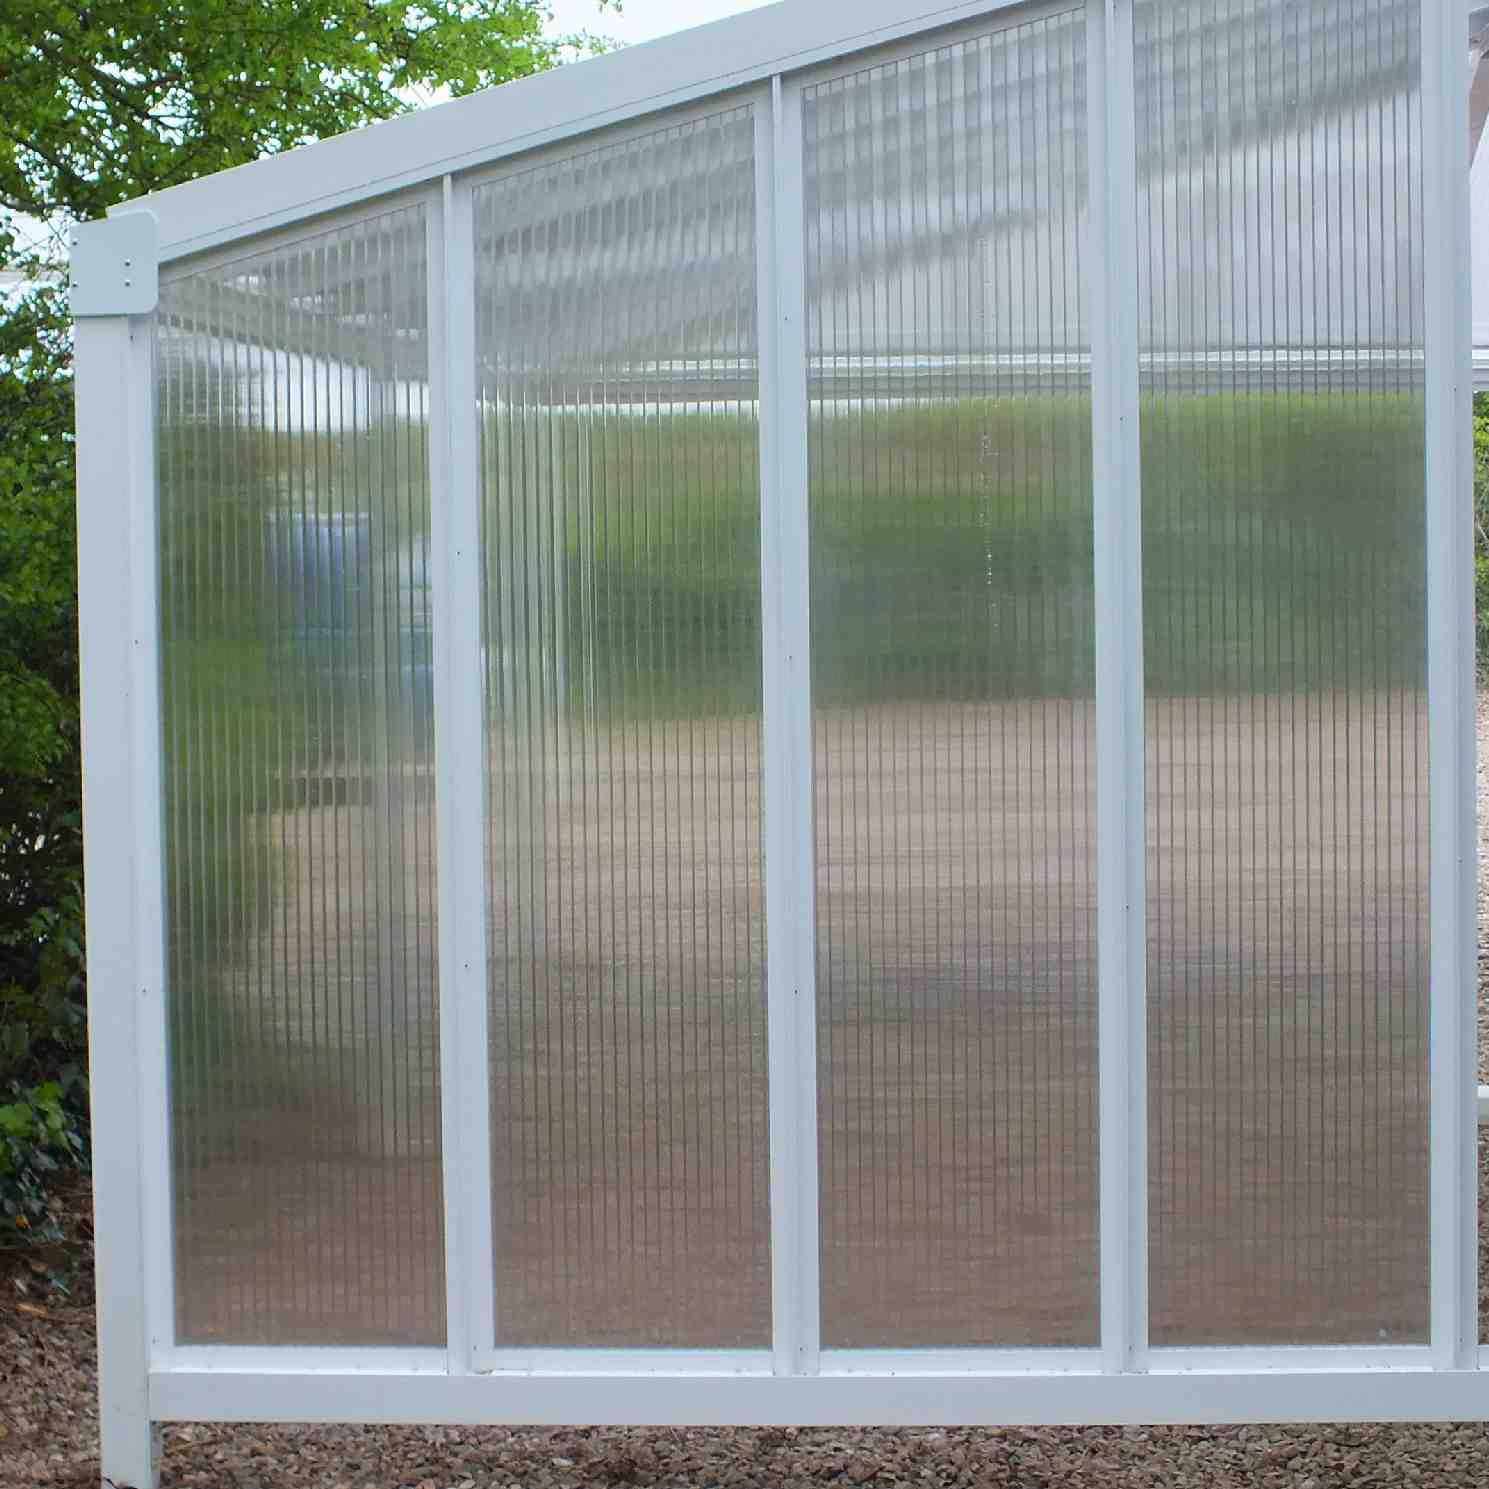 Omega Smart Canopy - FULL Side In-Fill Section for Sides of Canopy, 6mm Glass Clear Plate Polycarbonate In-Fill Panels, White Frame